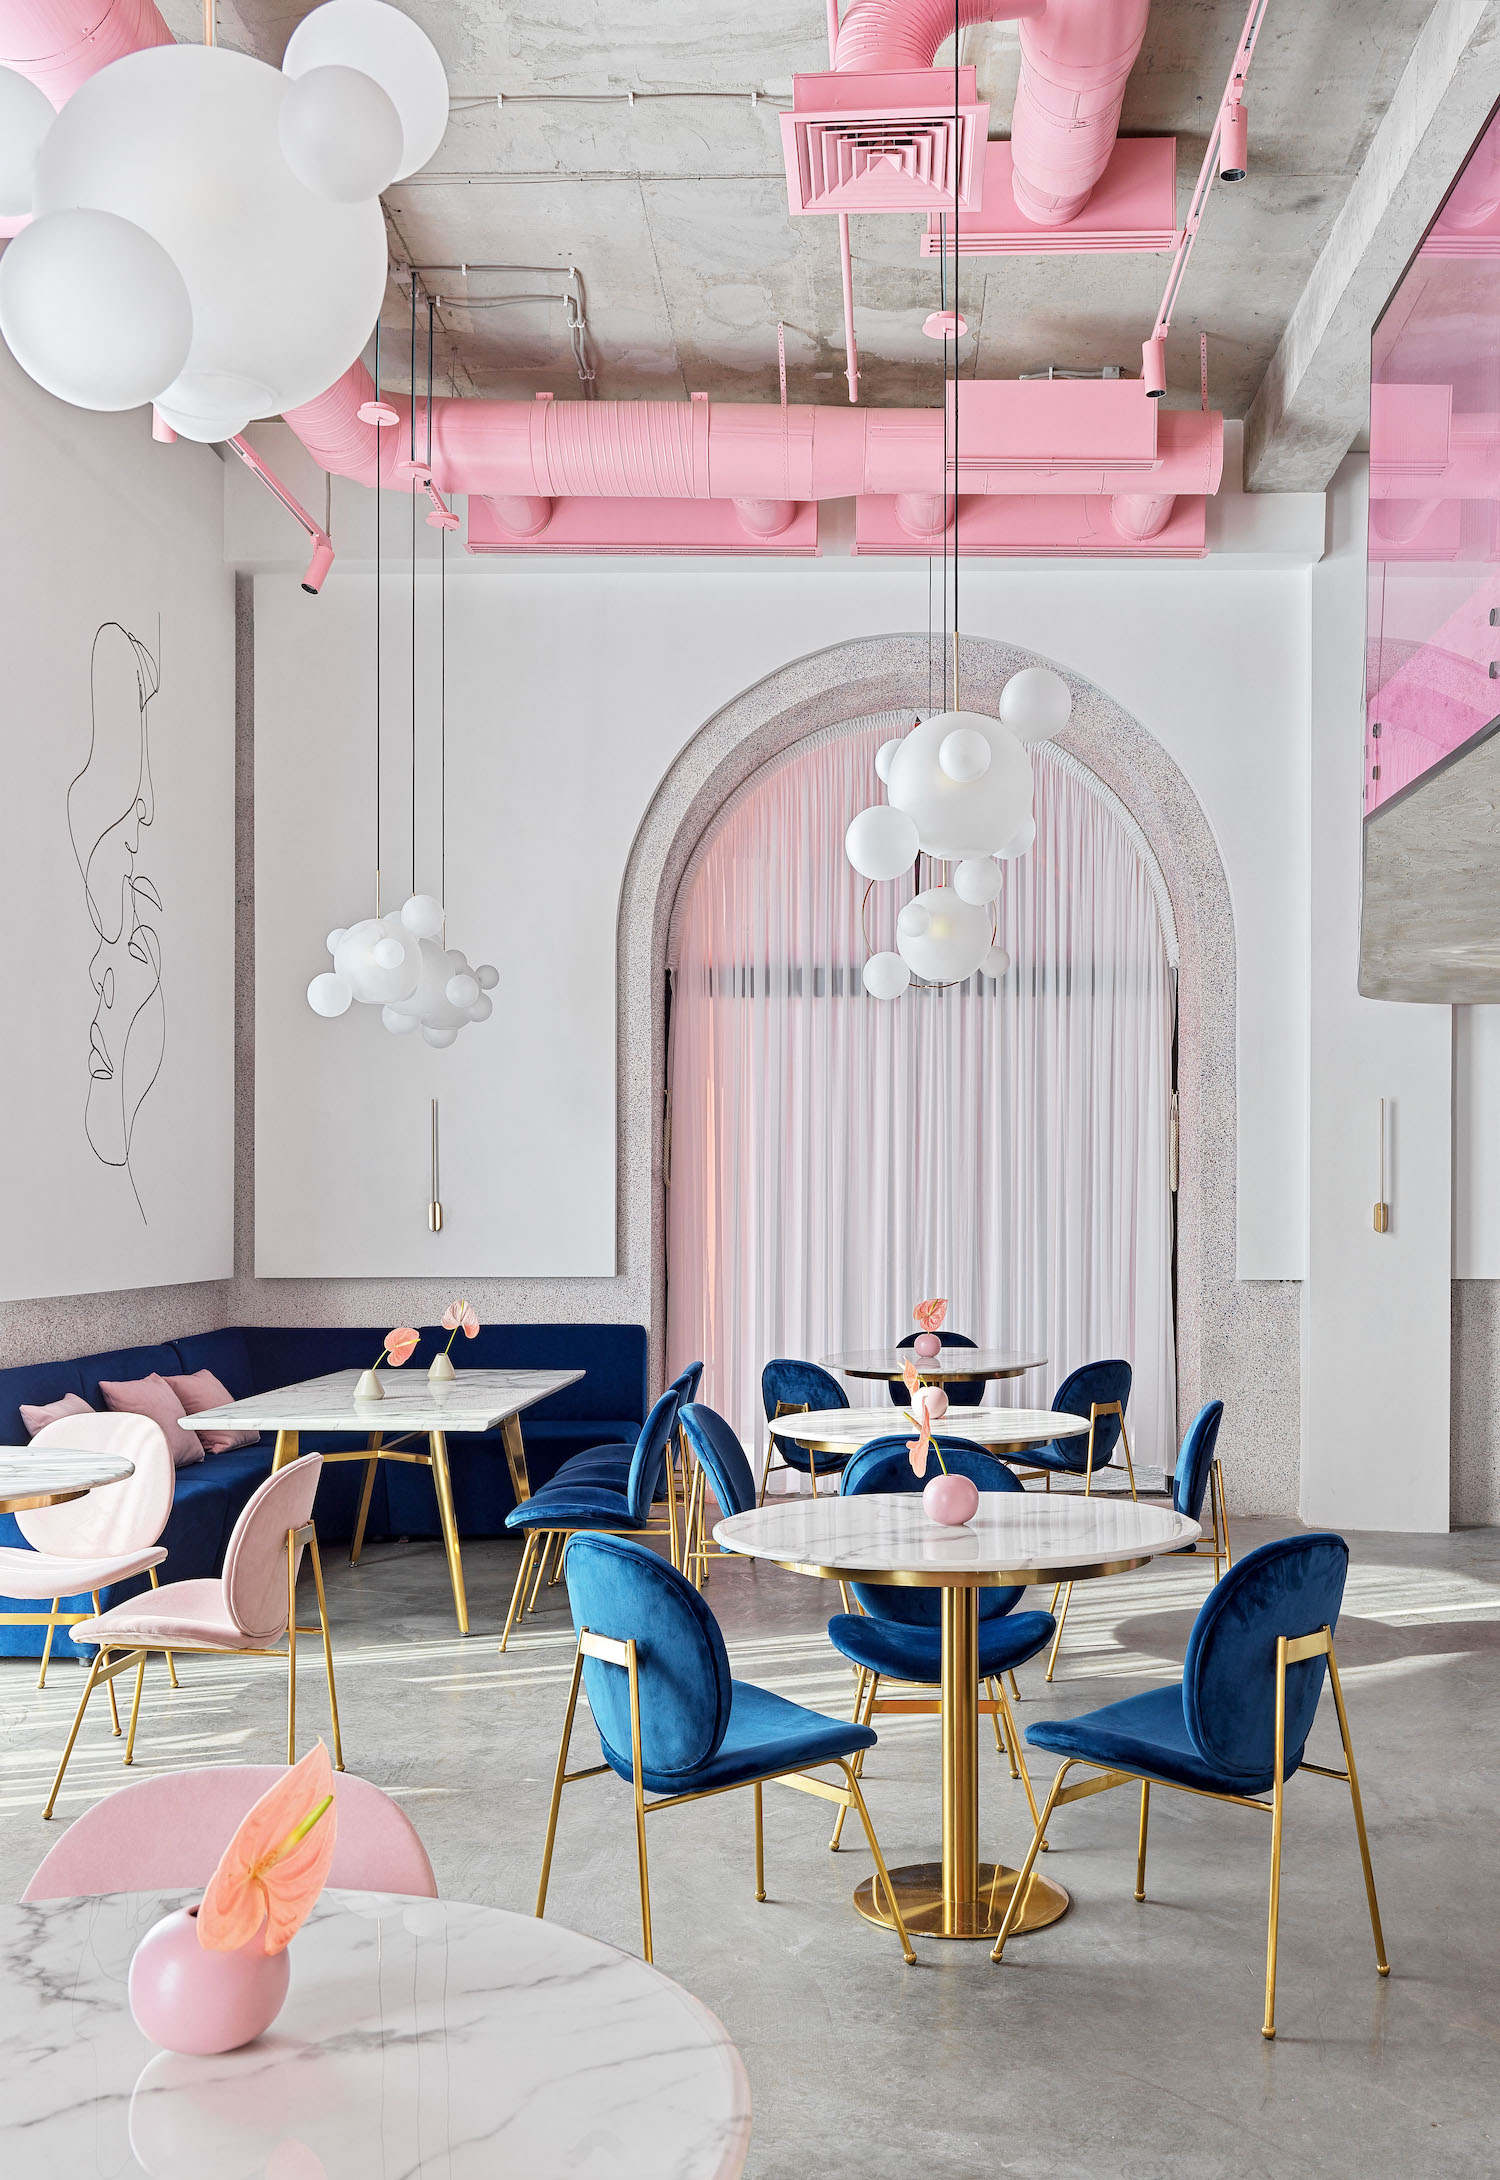 blue and pink chairs in dijon restaurant